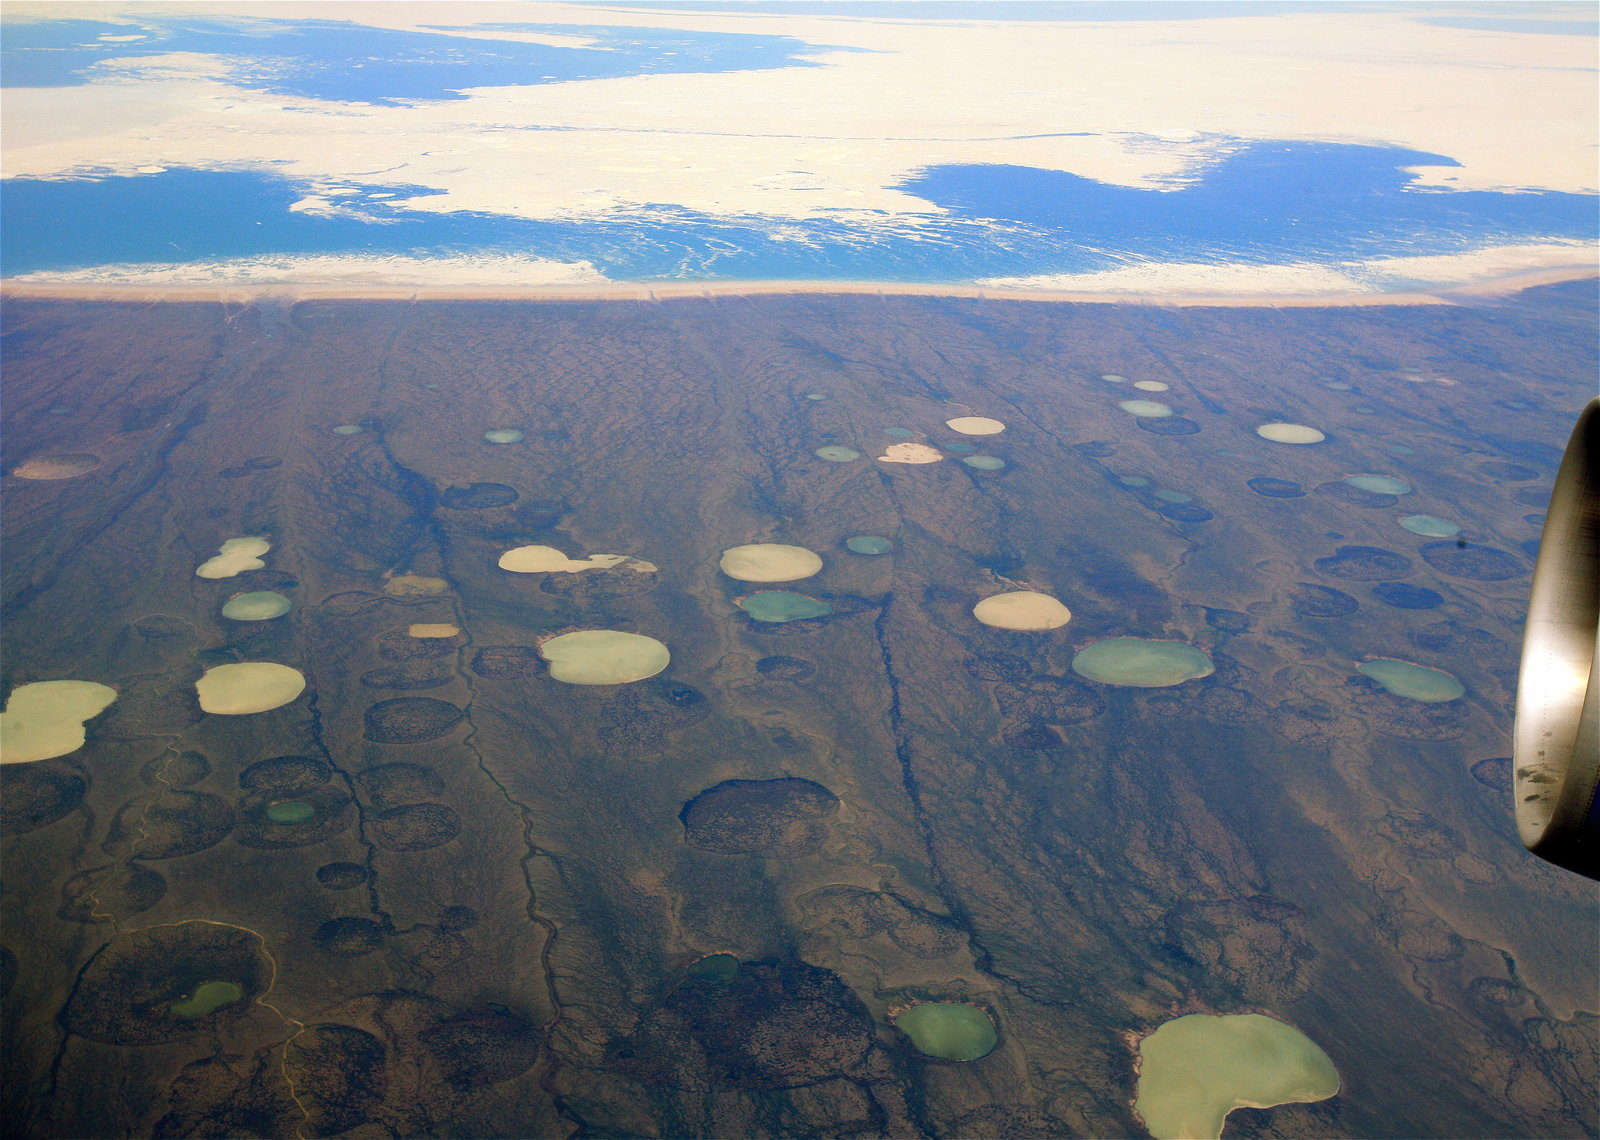 Melting permafrost is altering the landscape in northern Canada